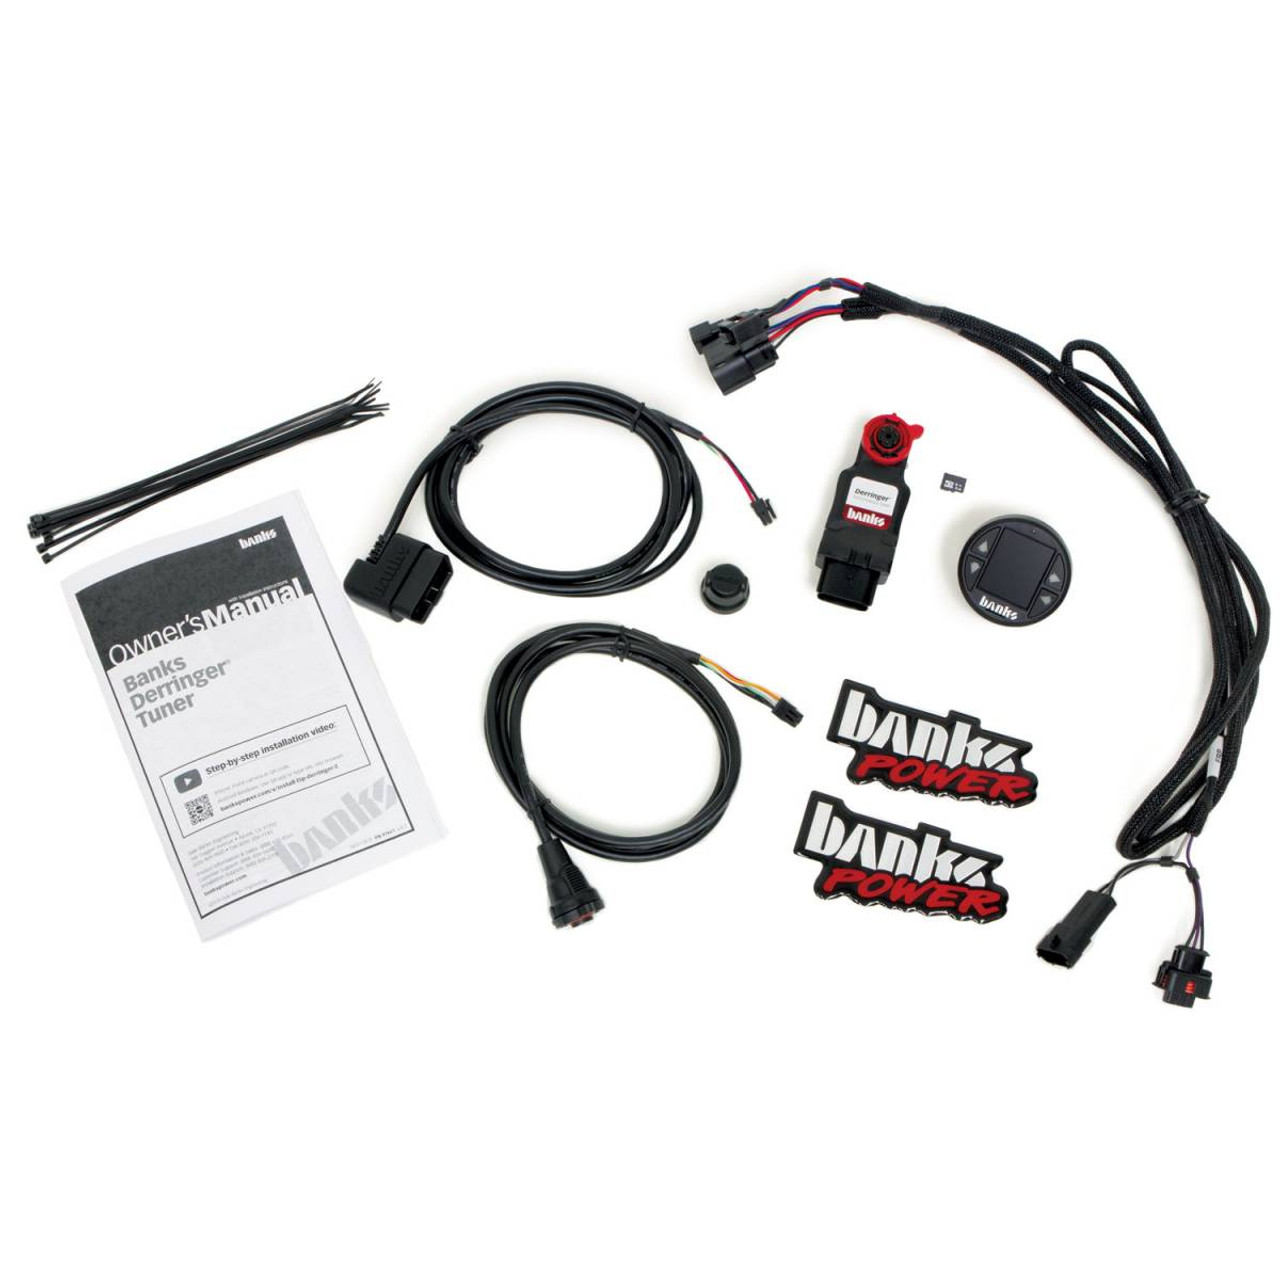 "Banks Power Derringer Tuner W/ 1.8"" iDash DataMonster For 11-19 Ford Power Stroke 6.7L - 66795"